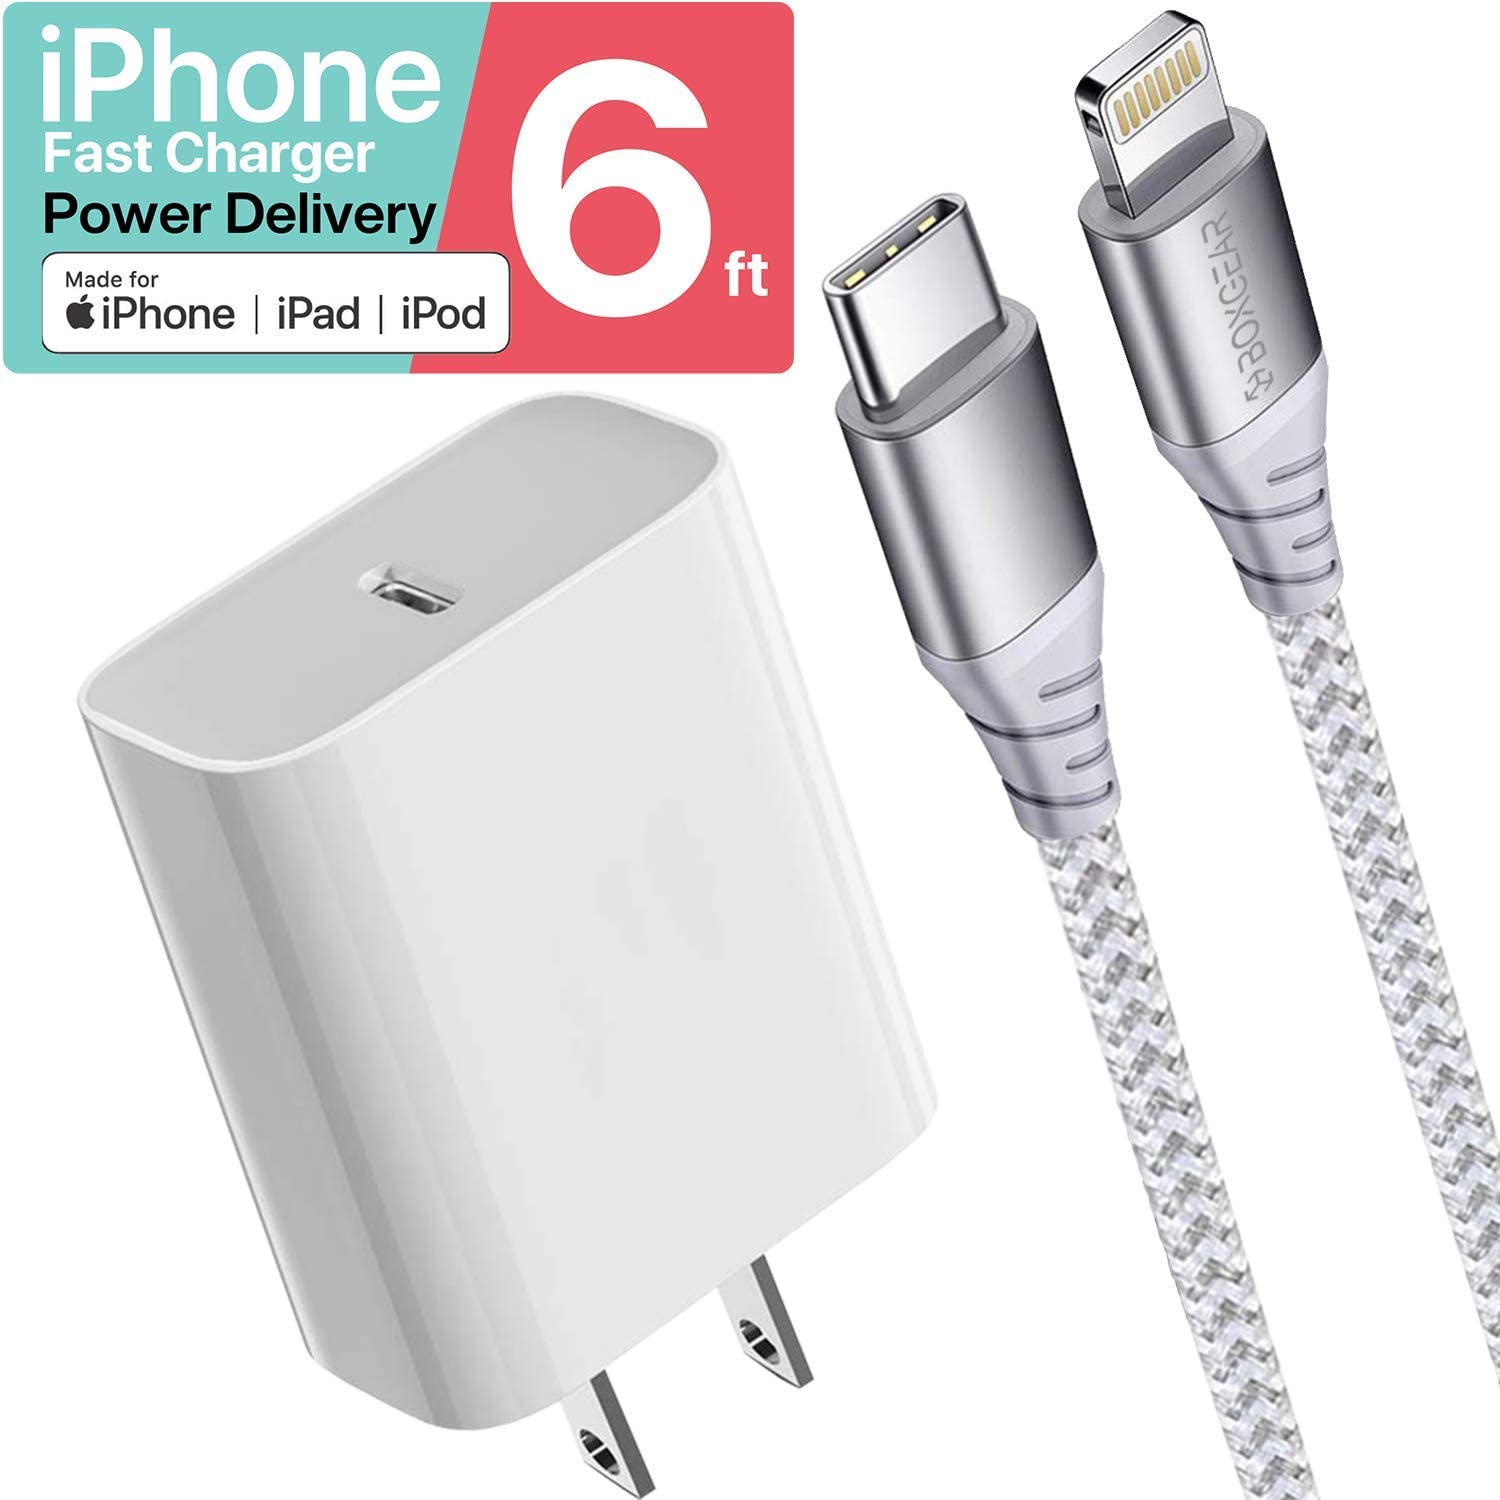 Boxgear iPhone Charger 6 ft - MFi Certified Braided Lightning Cable for iPhone 11/ Pro/Max/X/XS/XR/XS Max/ 8/ Plus/7/7 Plus/6/6S/6 Plus - Charges 50% In 30 Minutes - Phone Charger for Apple Devices